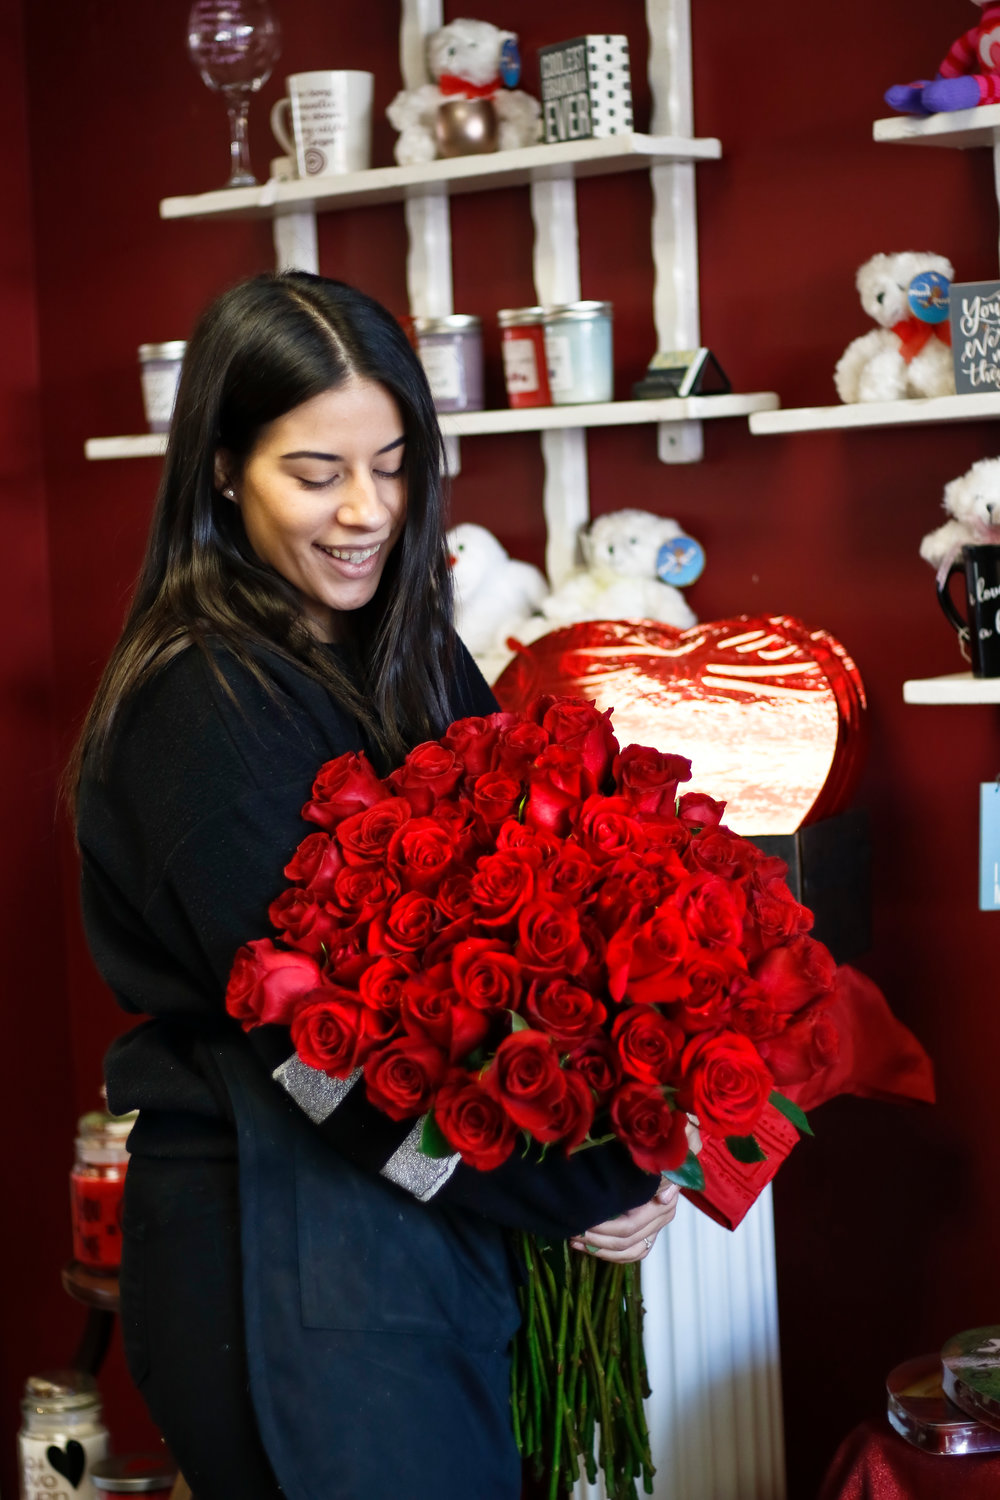 Central Florist's roses are sourced directly from Ecuador.